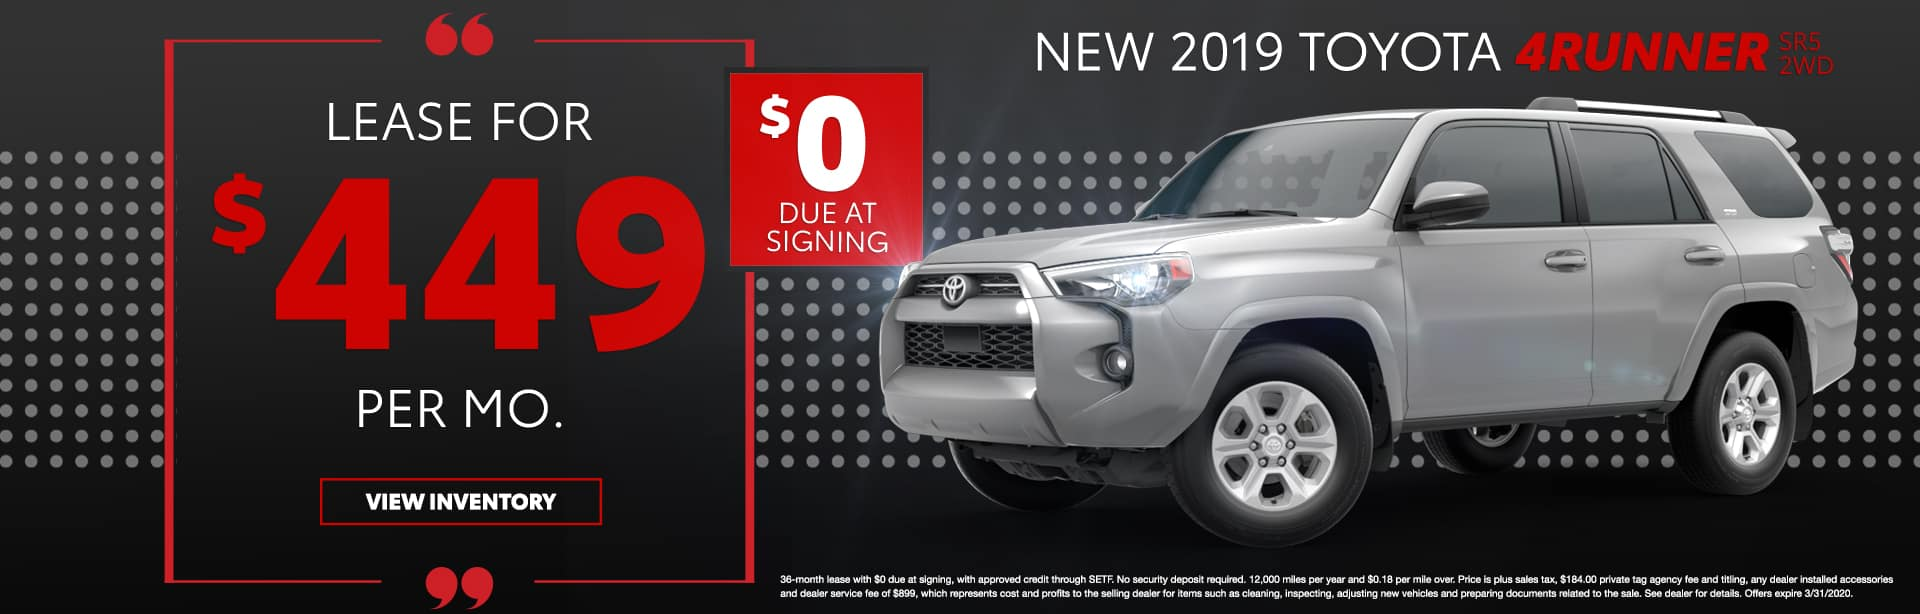 New 2019 Toyota 4Runner SR5 2WD | Lease For $449 Per Mo | $0 Due At Signing